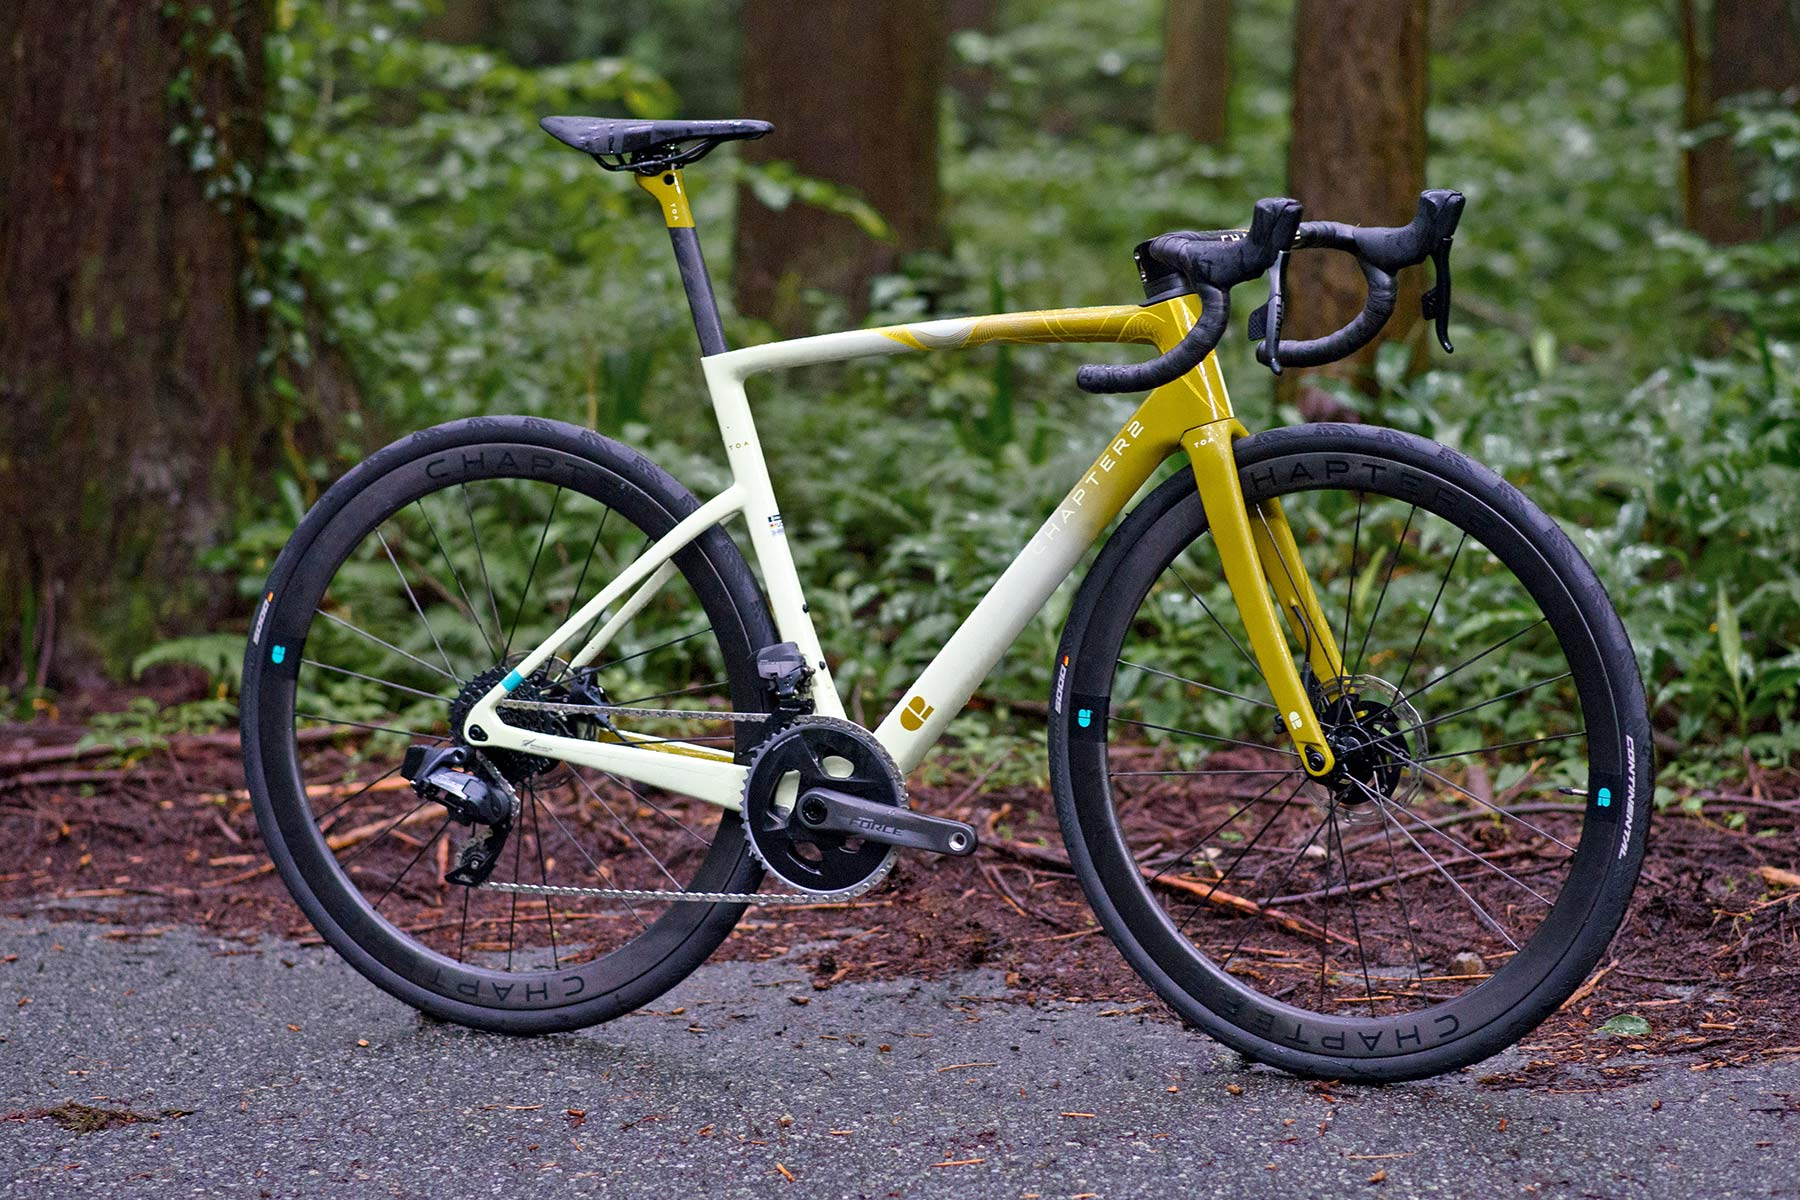 Chapter2 TOA all-road bike, fully integrated versatile aero carbon road bike